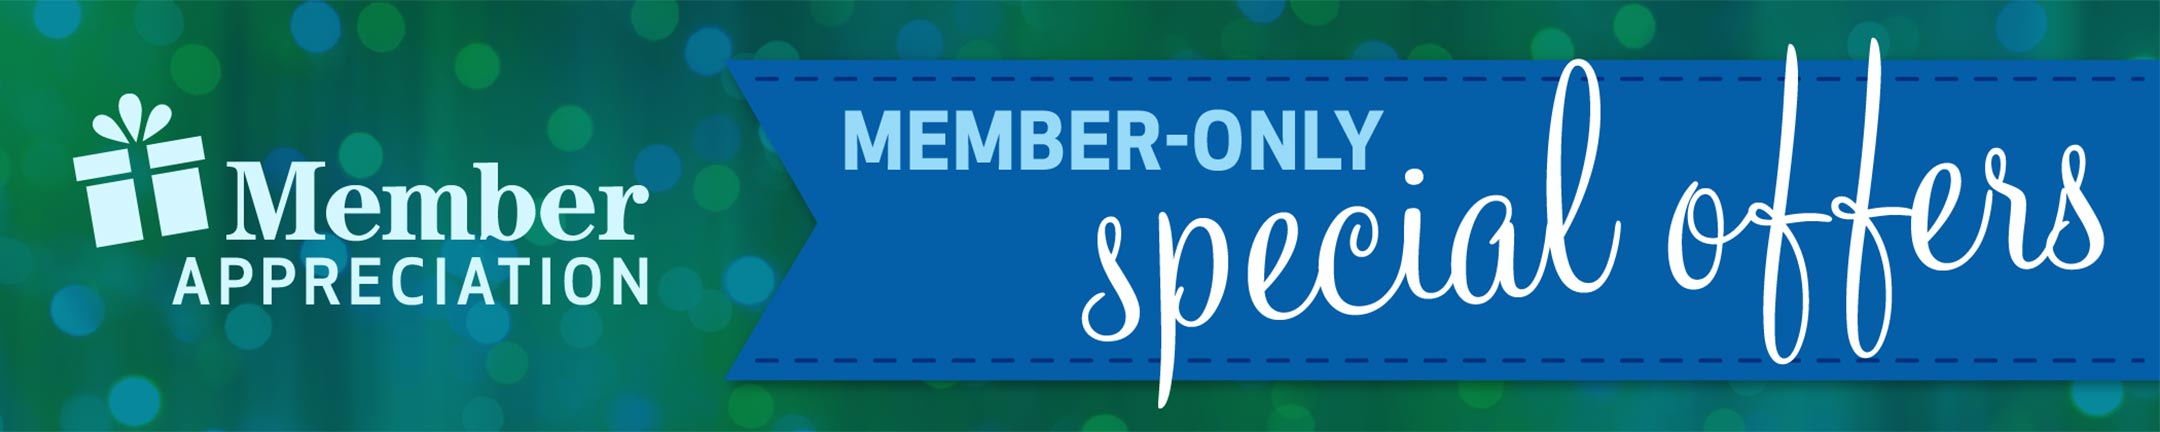 Member Appreciation with Member-only Special Offers!